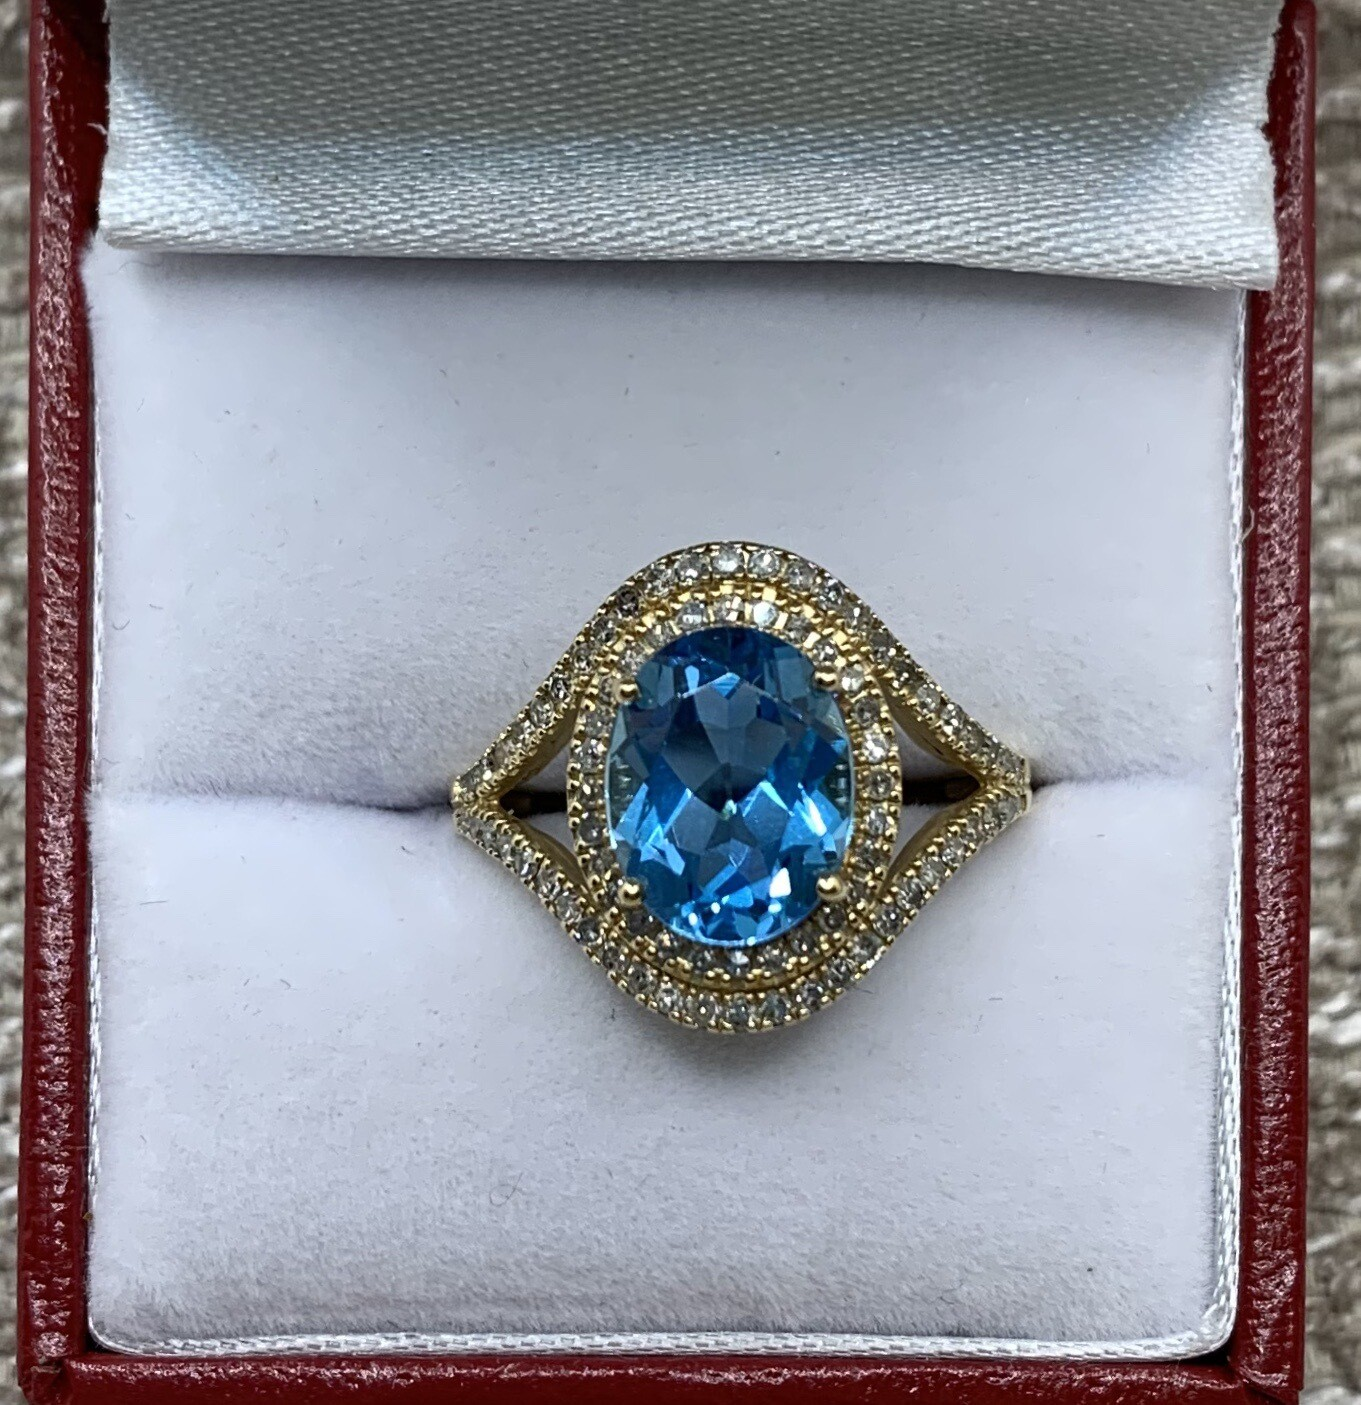 Stunning Oval Blue Topaz With Diamond Halo And Diamond Accent Band